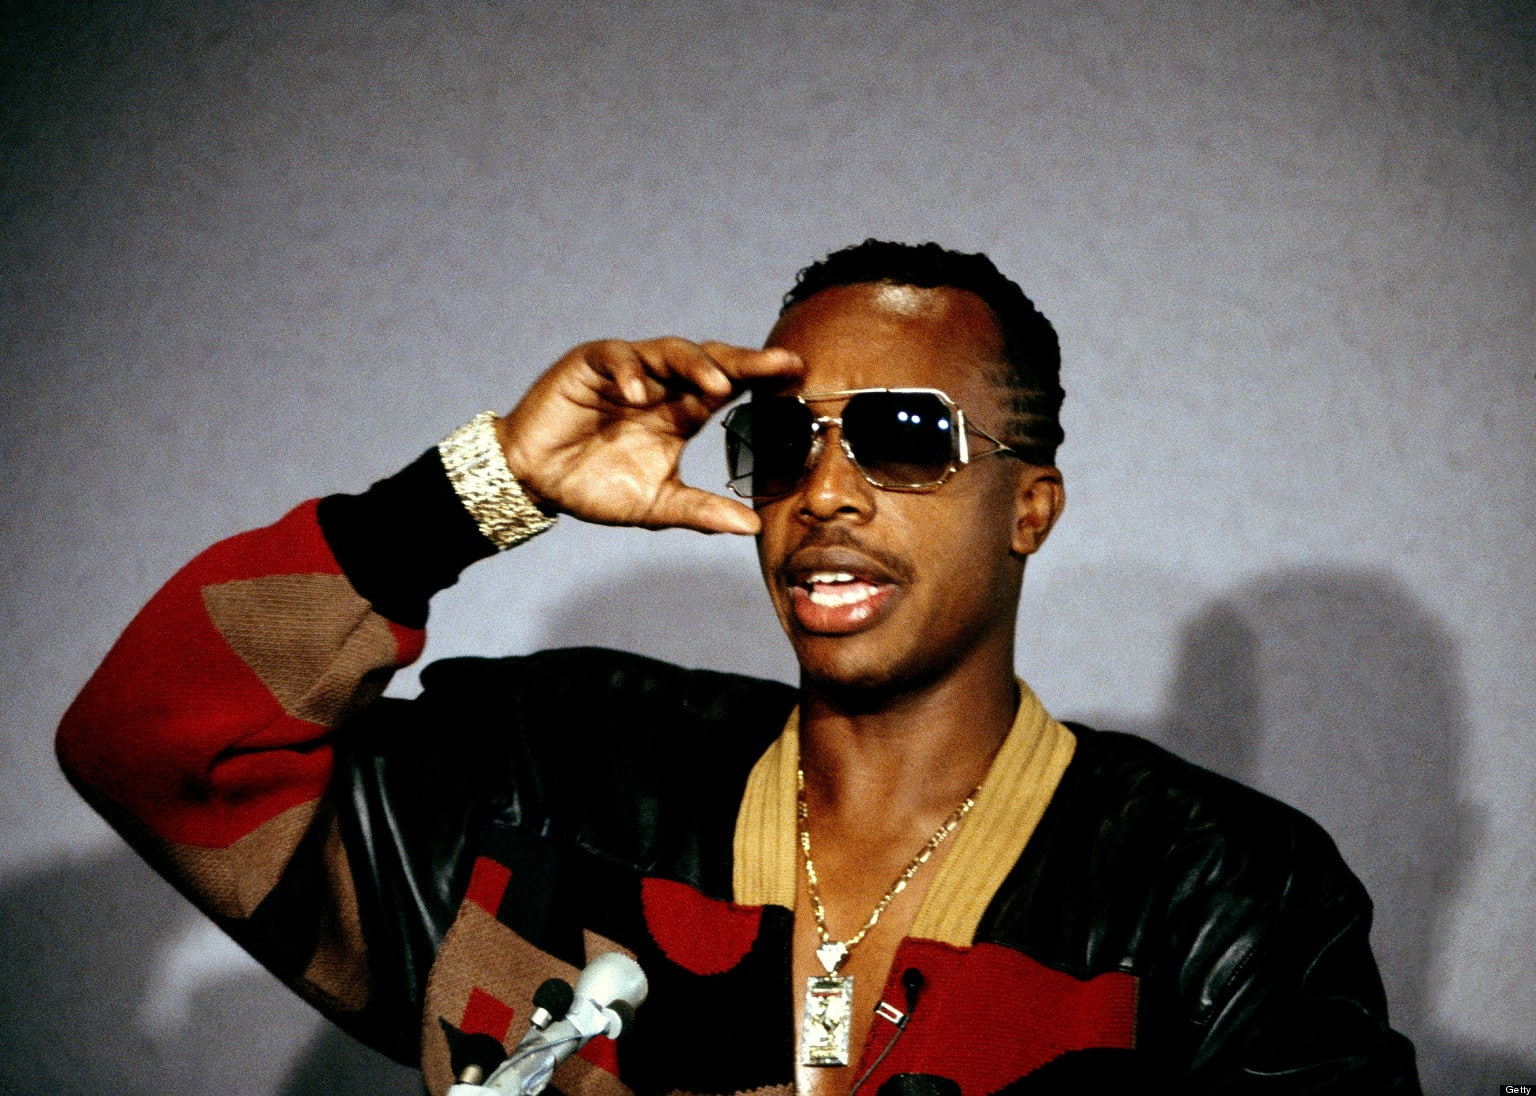 LOS ANGELES, USA - 1st SEPTEMBER: American rapper MC Hammer appears at a press conference in Los Angeles, USA in September 1990. (Photo by Jan Persson/Redferns)